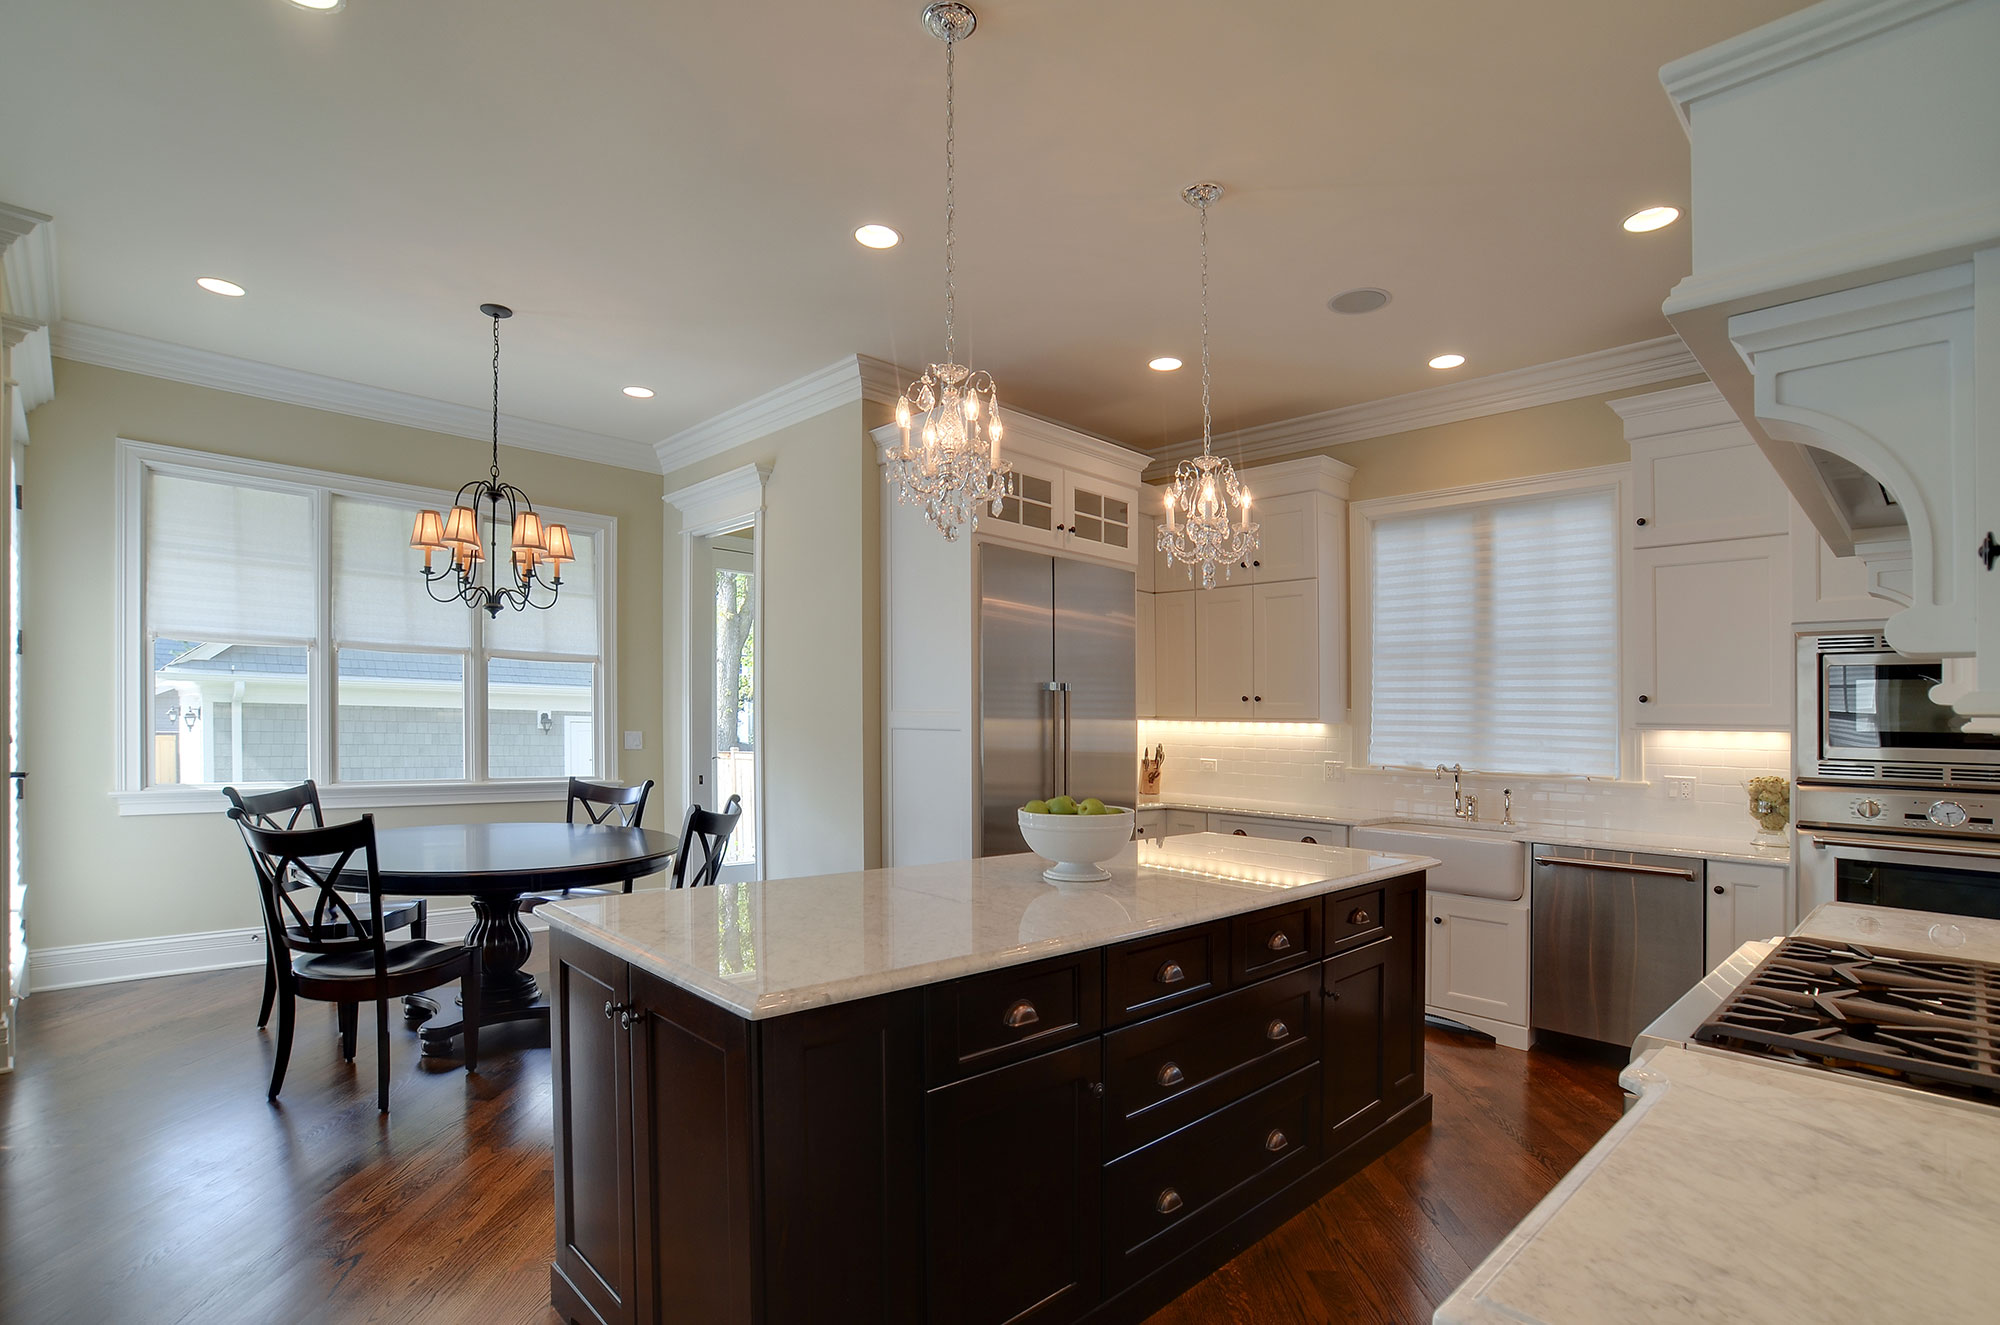 Superb Kitchen With Wood Cabinetry, Granite Countertops, Island, And Stainless  Steel Appliances